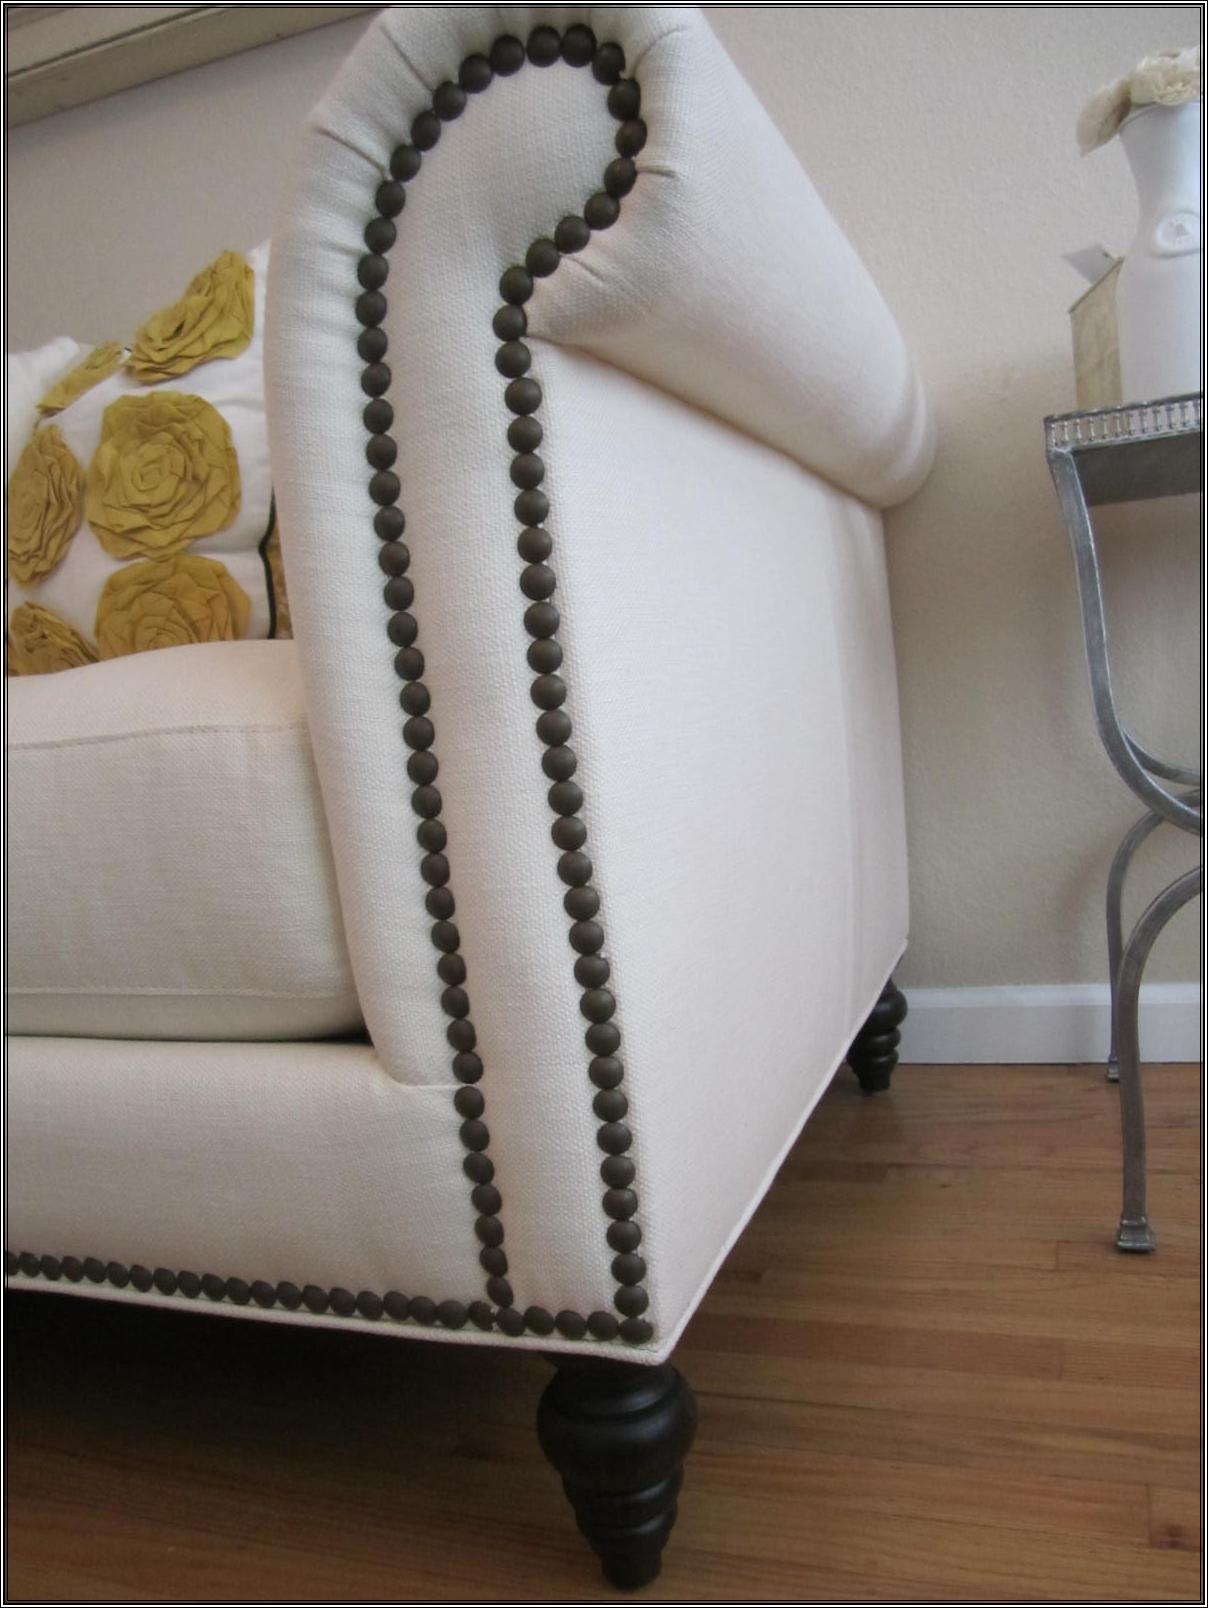 nailhead trim | House To Home Blog